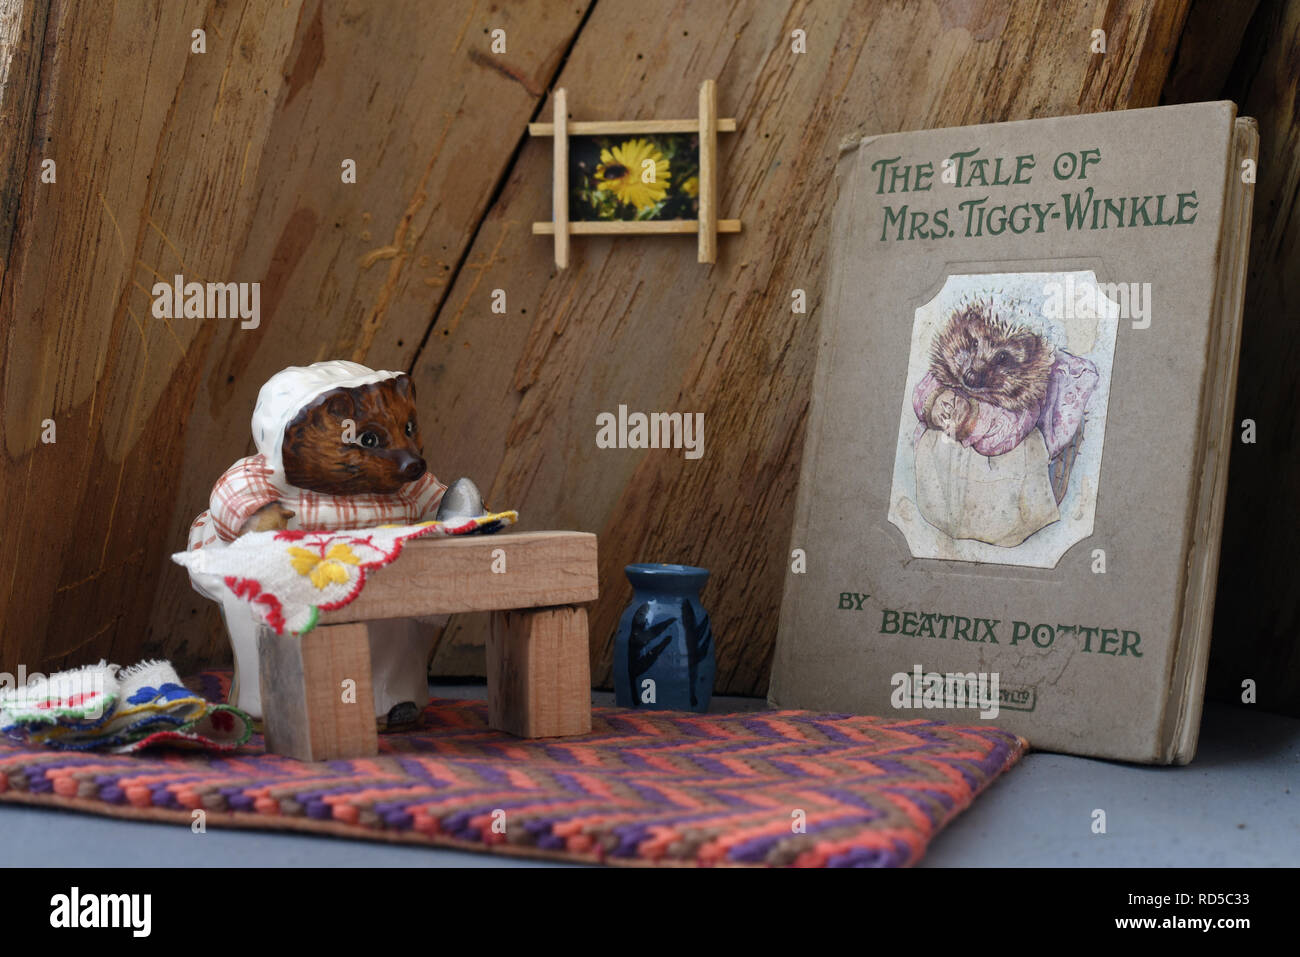 Vintage Beatrix Potter book of the Tale of Mrs Tiggy-Winkle and Beswick Pottery figure. Still Life - Stock Image